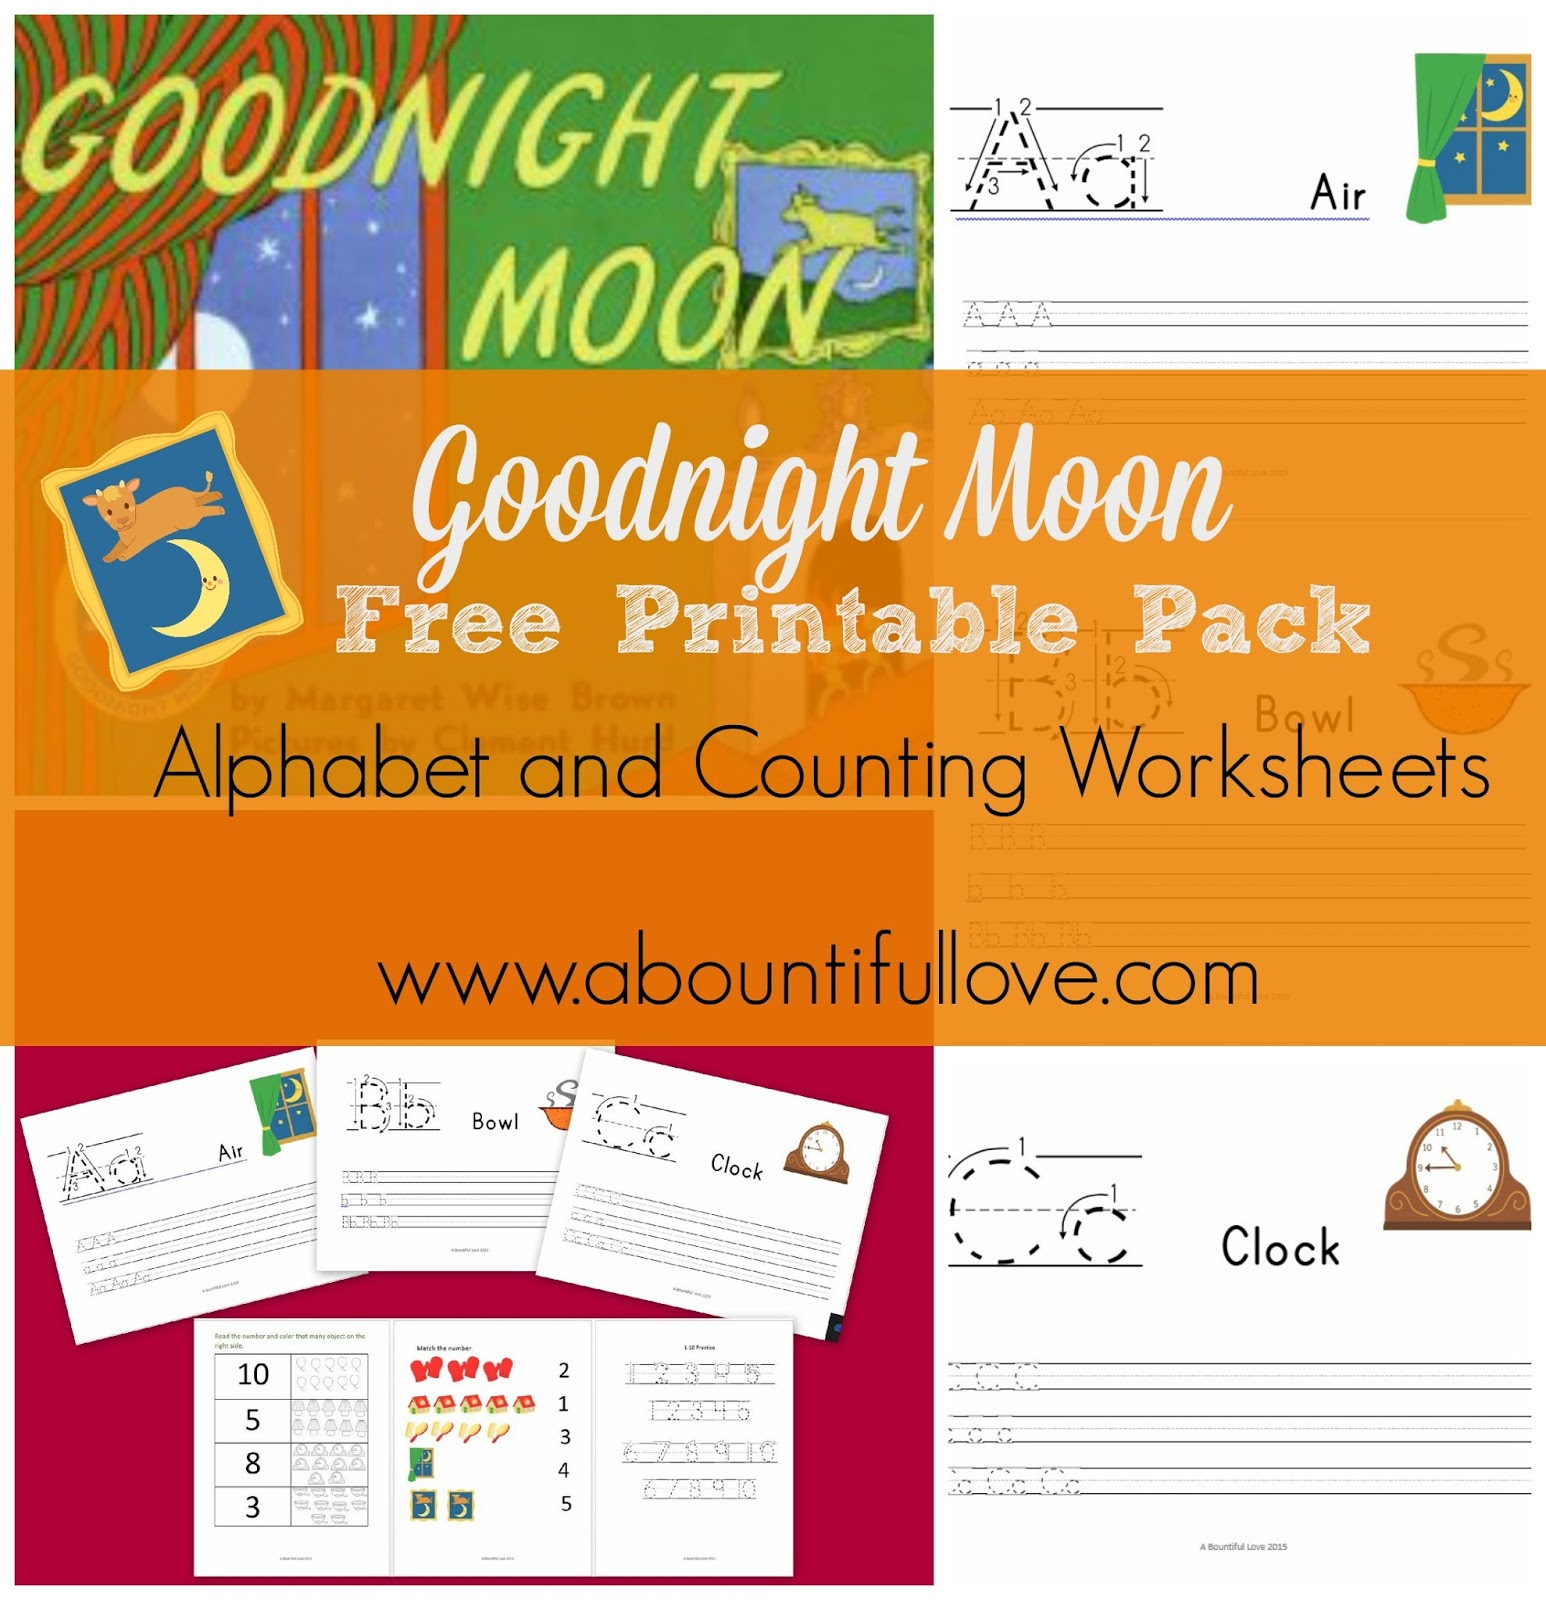 Goodnight Moon Free Printable Pack - A Bountiful Love | Goodnight Moon Printable Worksheets